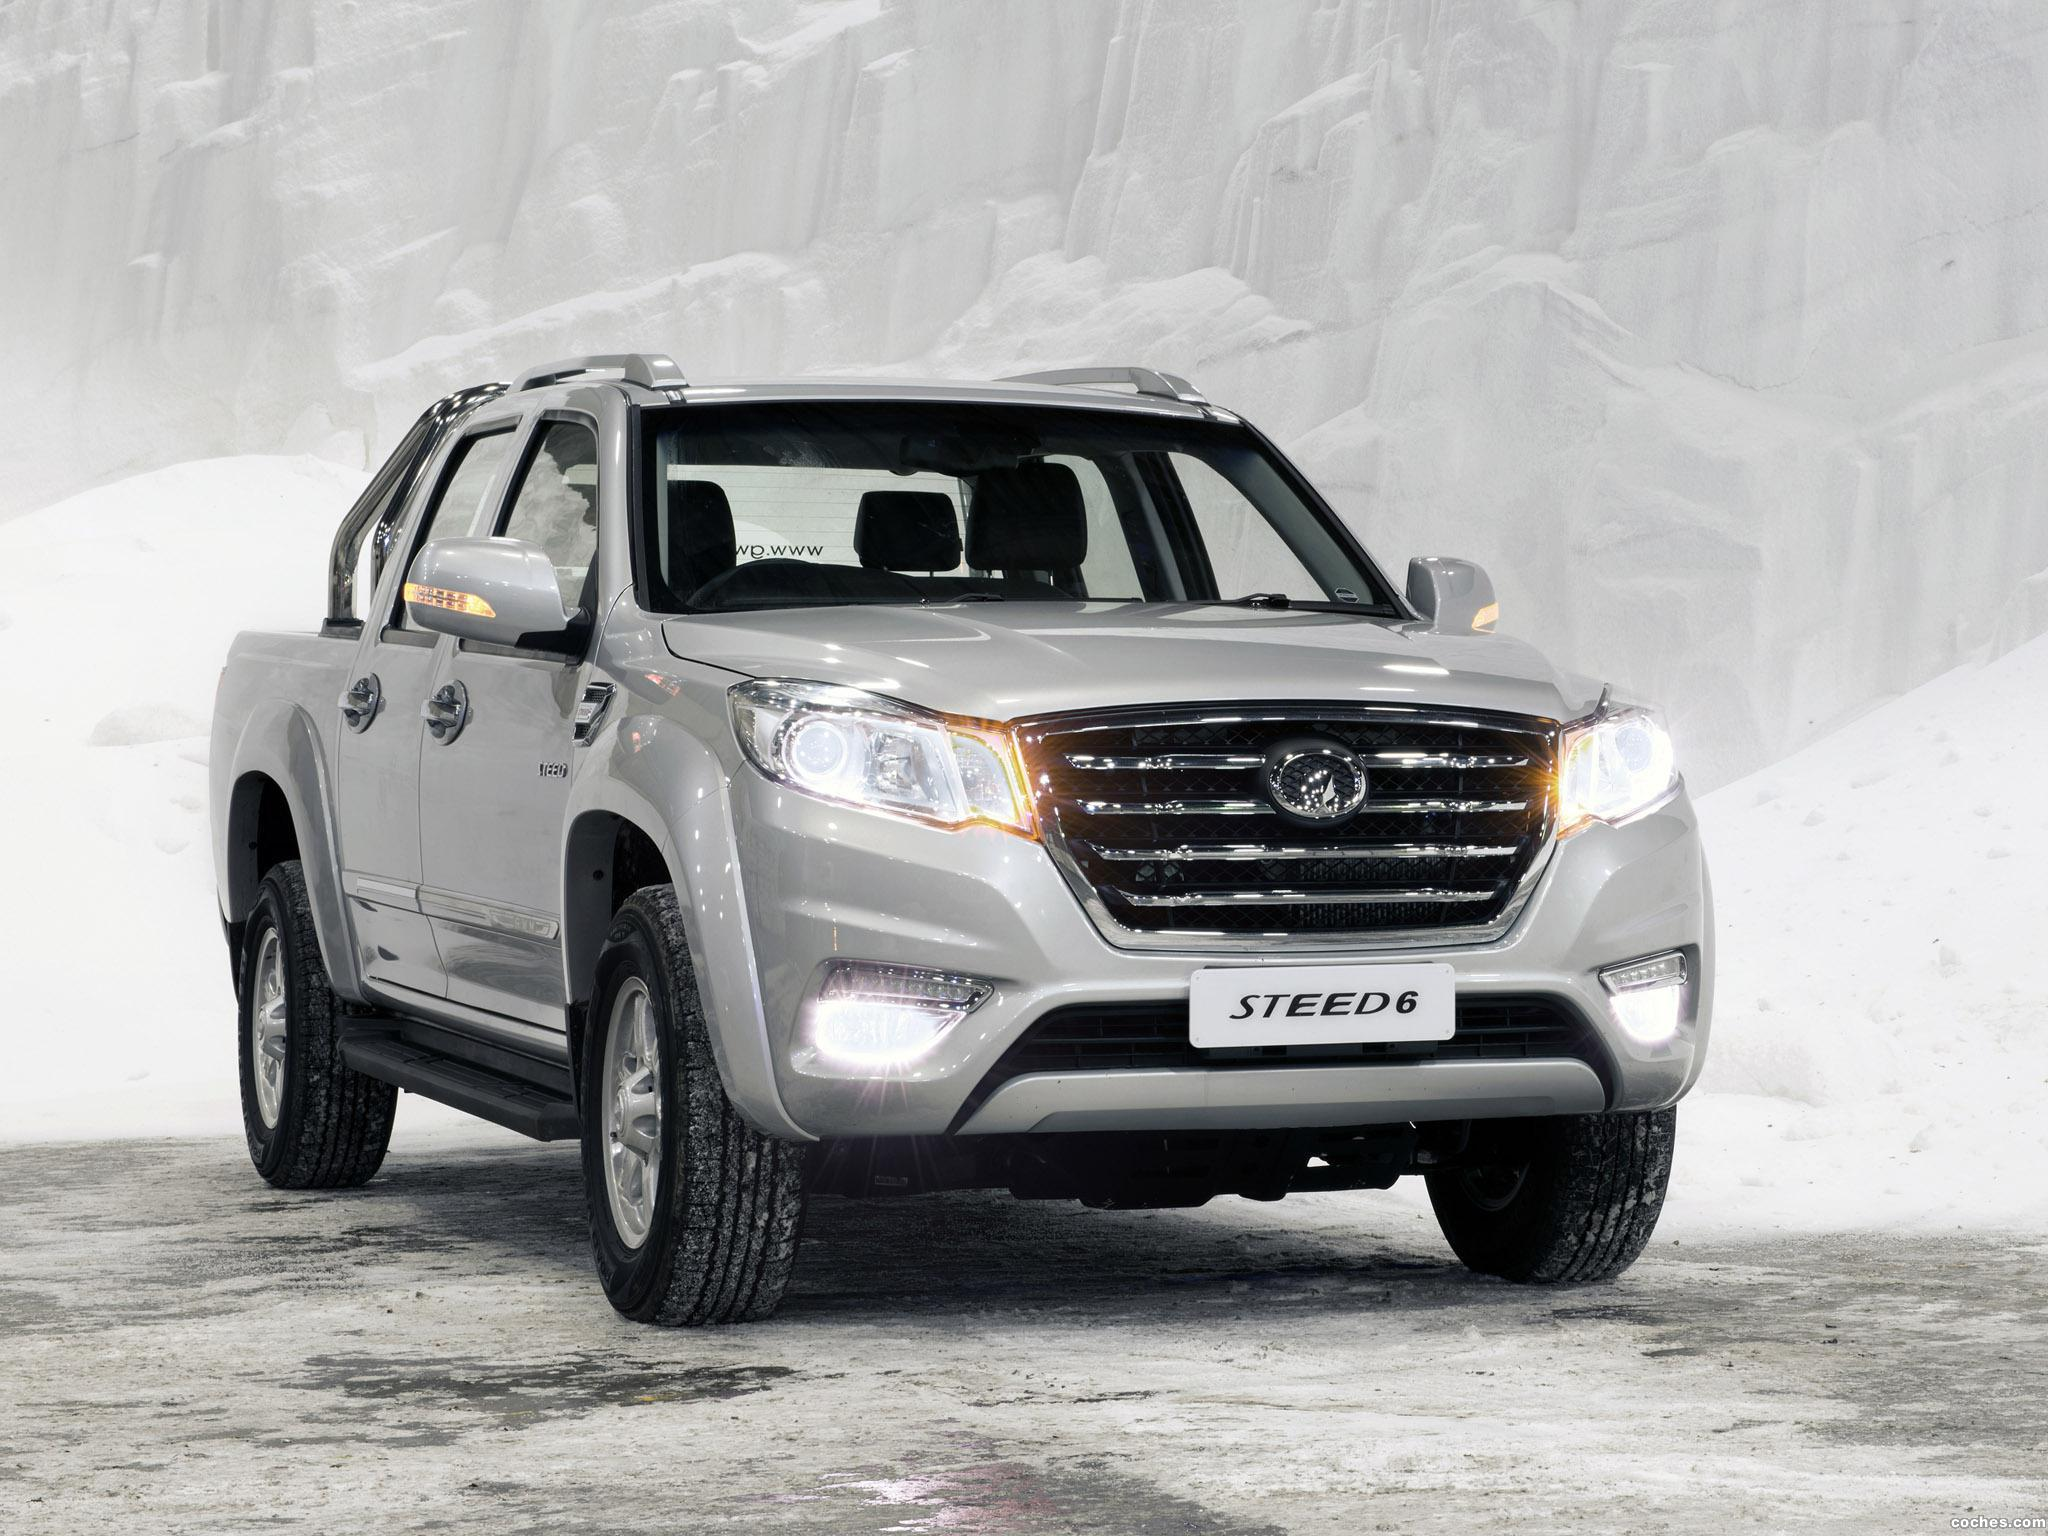 Foto 7 de GWM Steed 6 Double Cab 2014